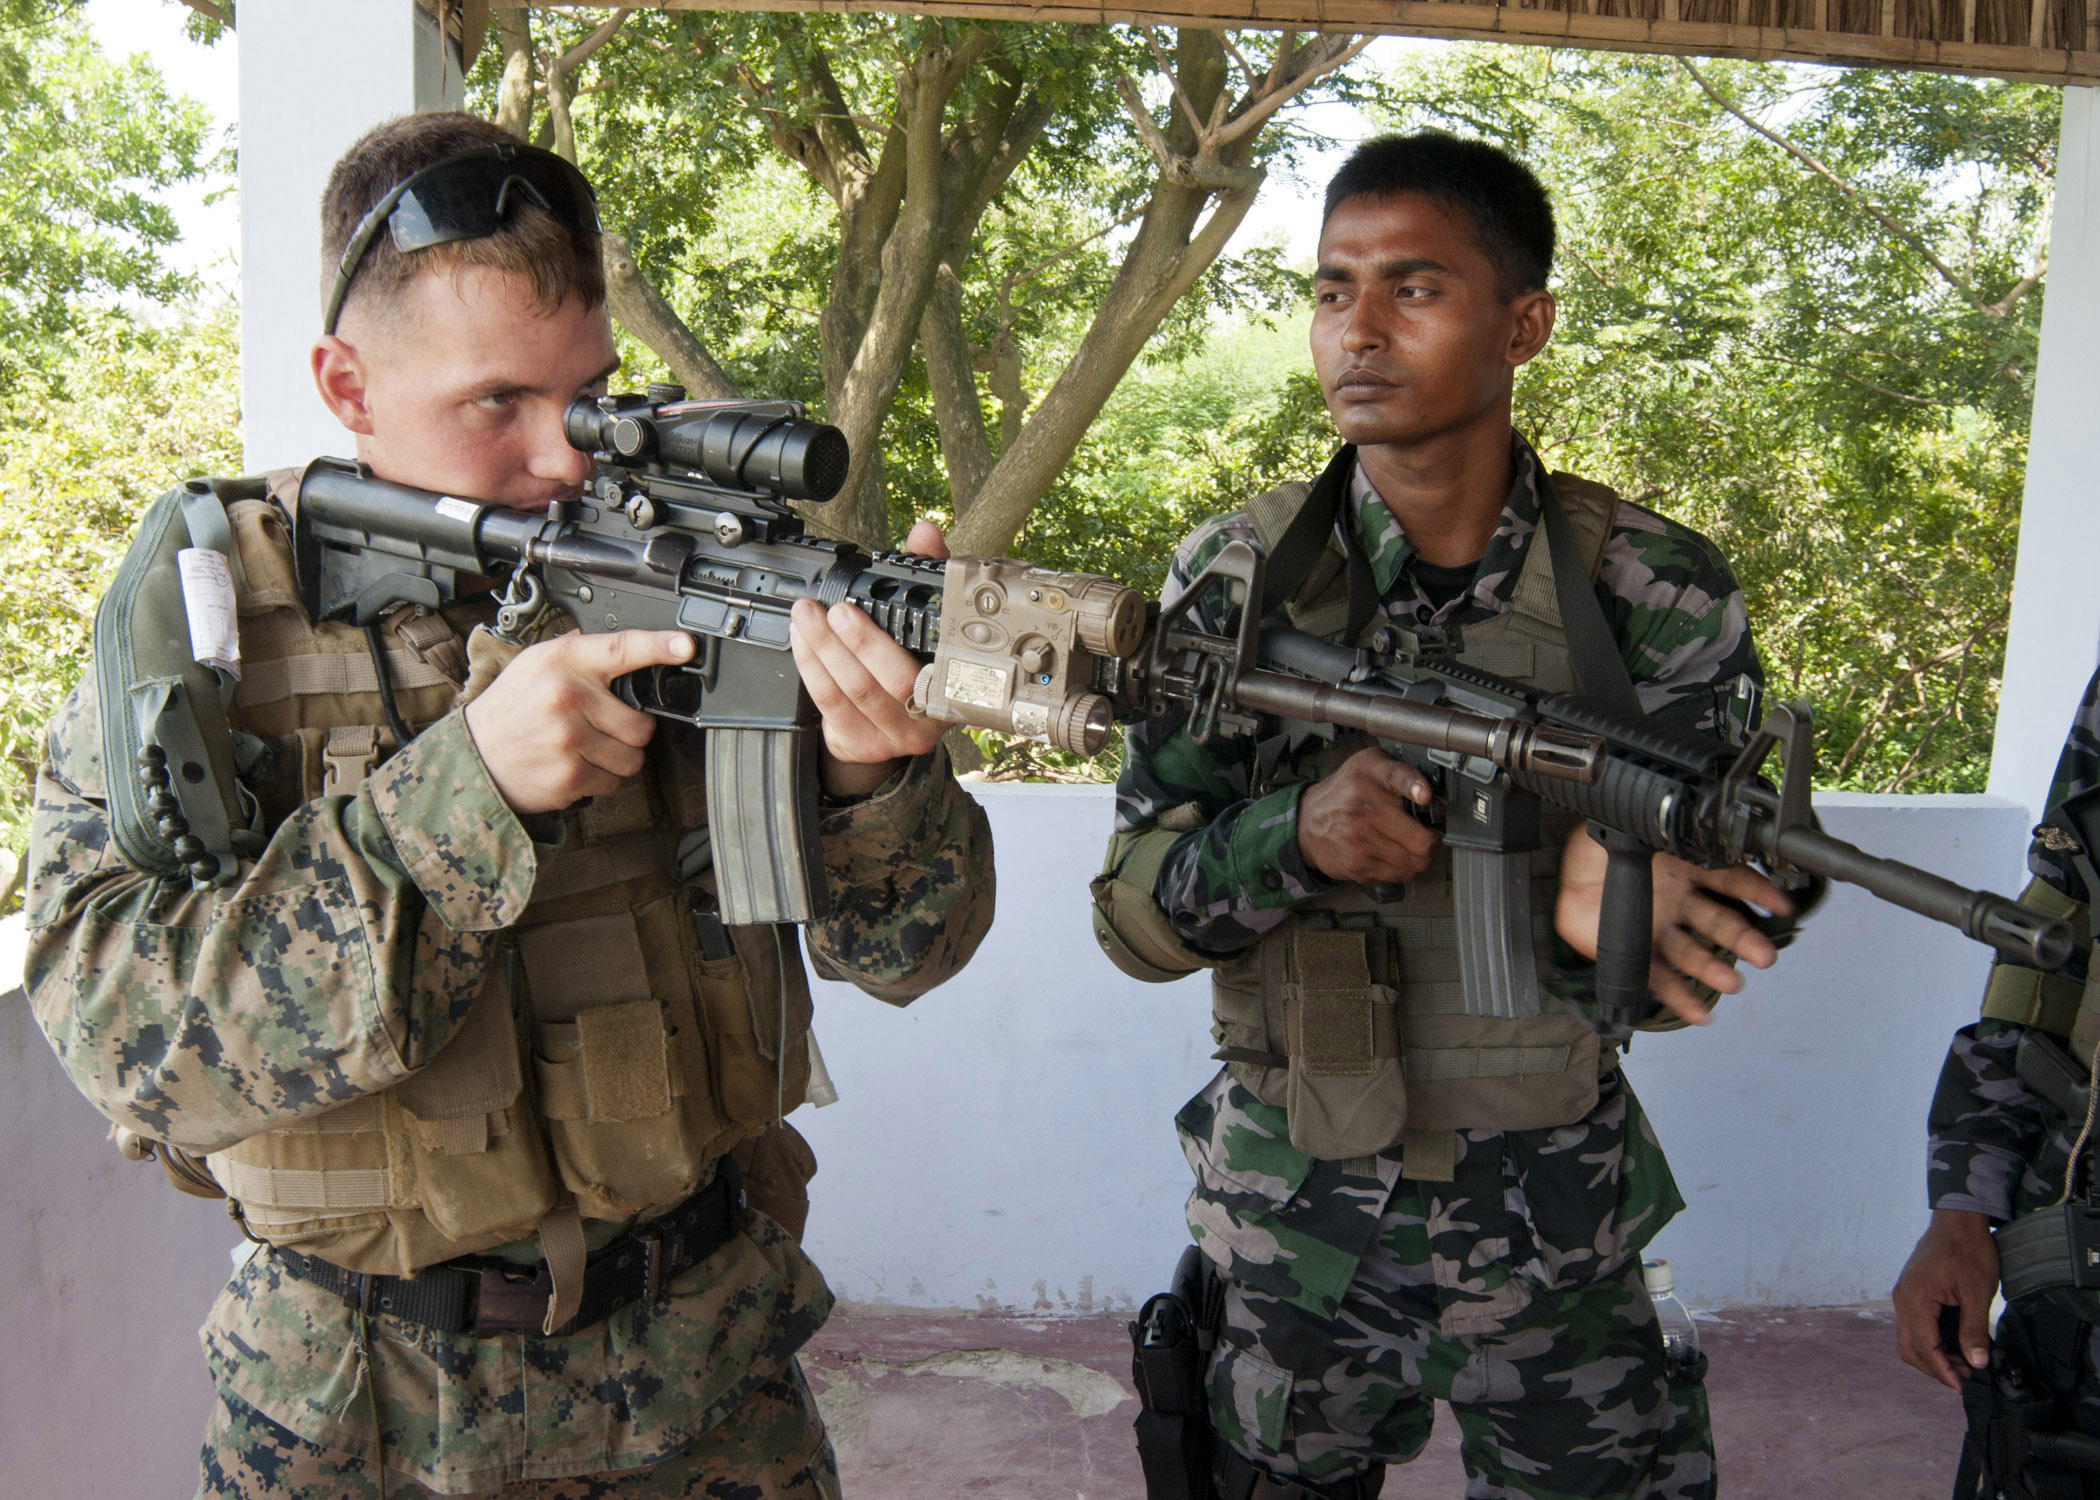 U.S. Marine Lance Cpl. Zachary Hodge, left, trains with sailors from the Bangladesh Special Warfare Diving and Salvage unit in Chittagong, Bangladesh, on Sept. 19, 2012.